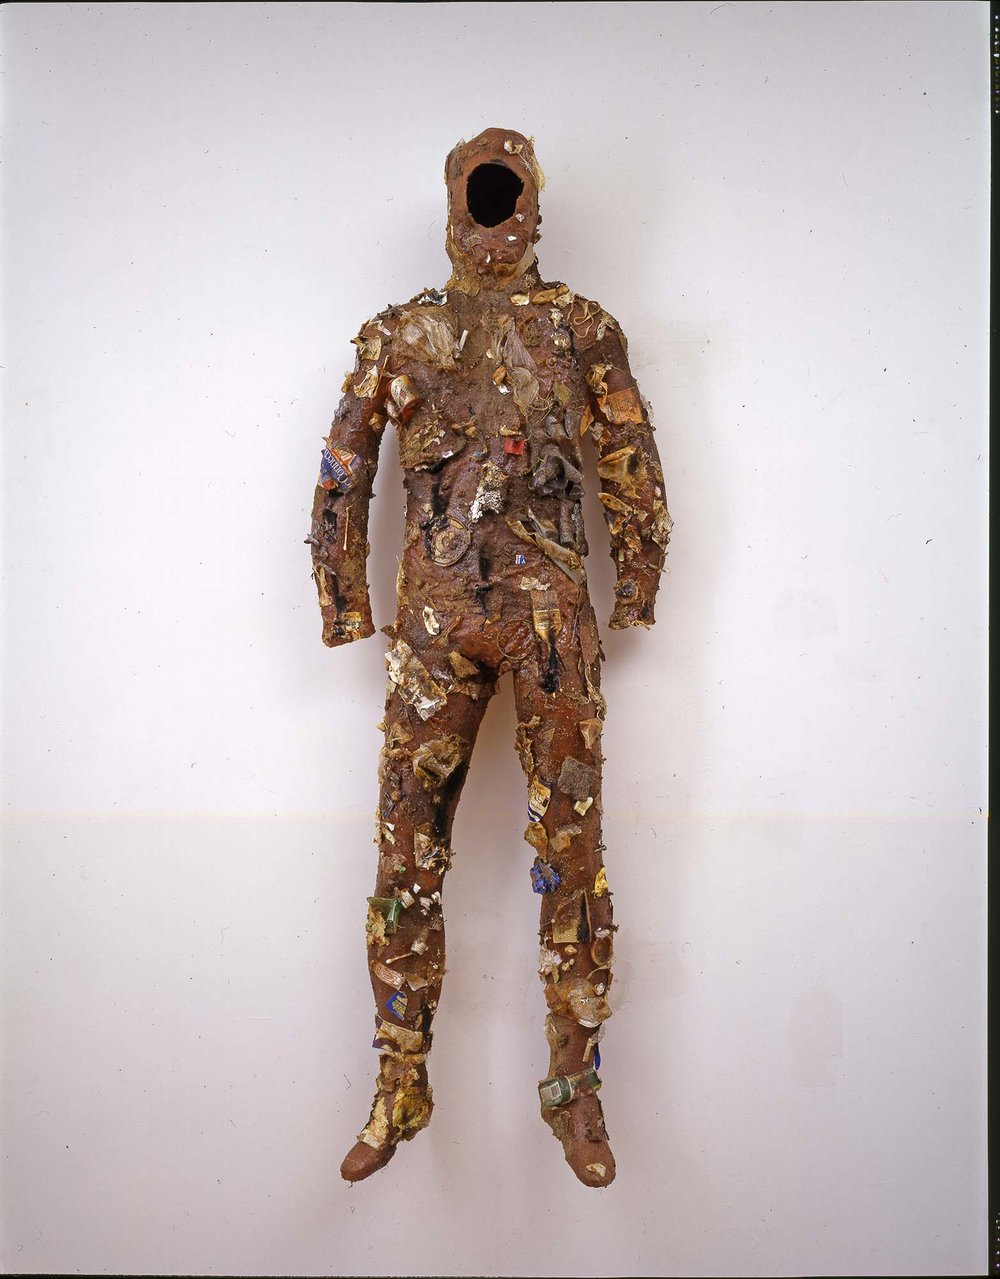 Trash Suit, 1995.